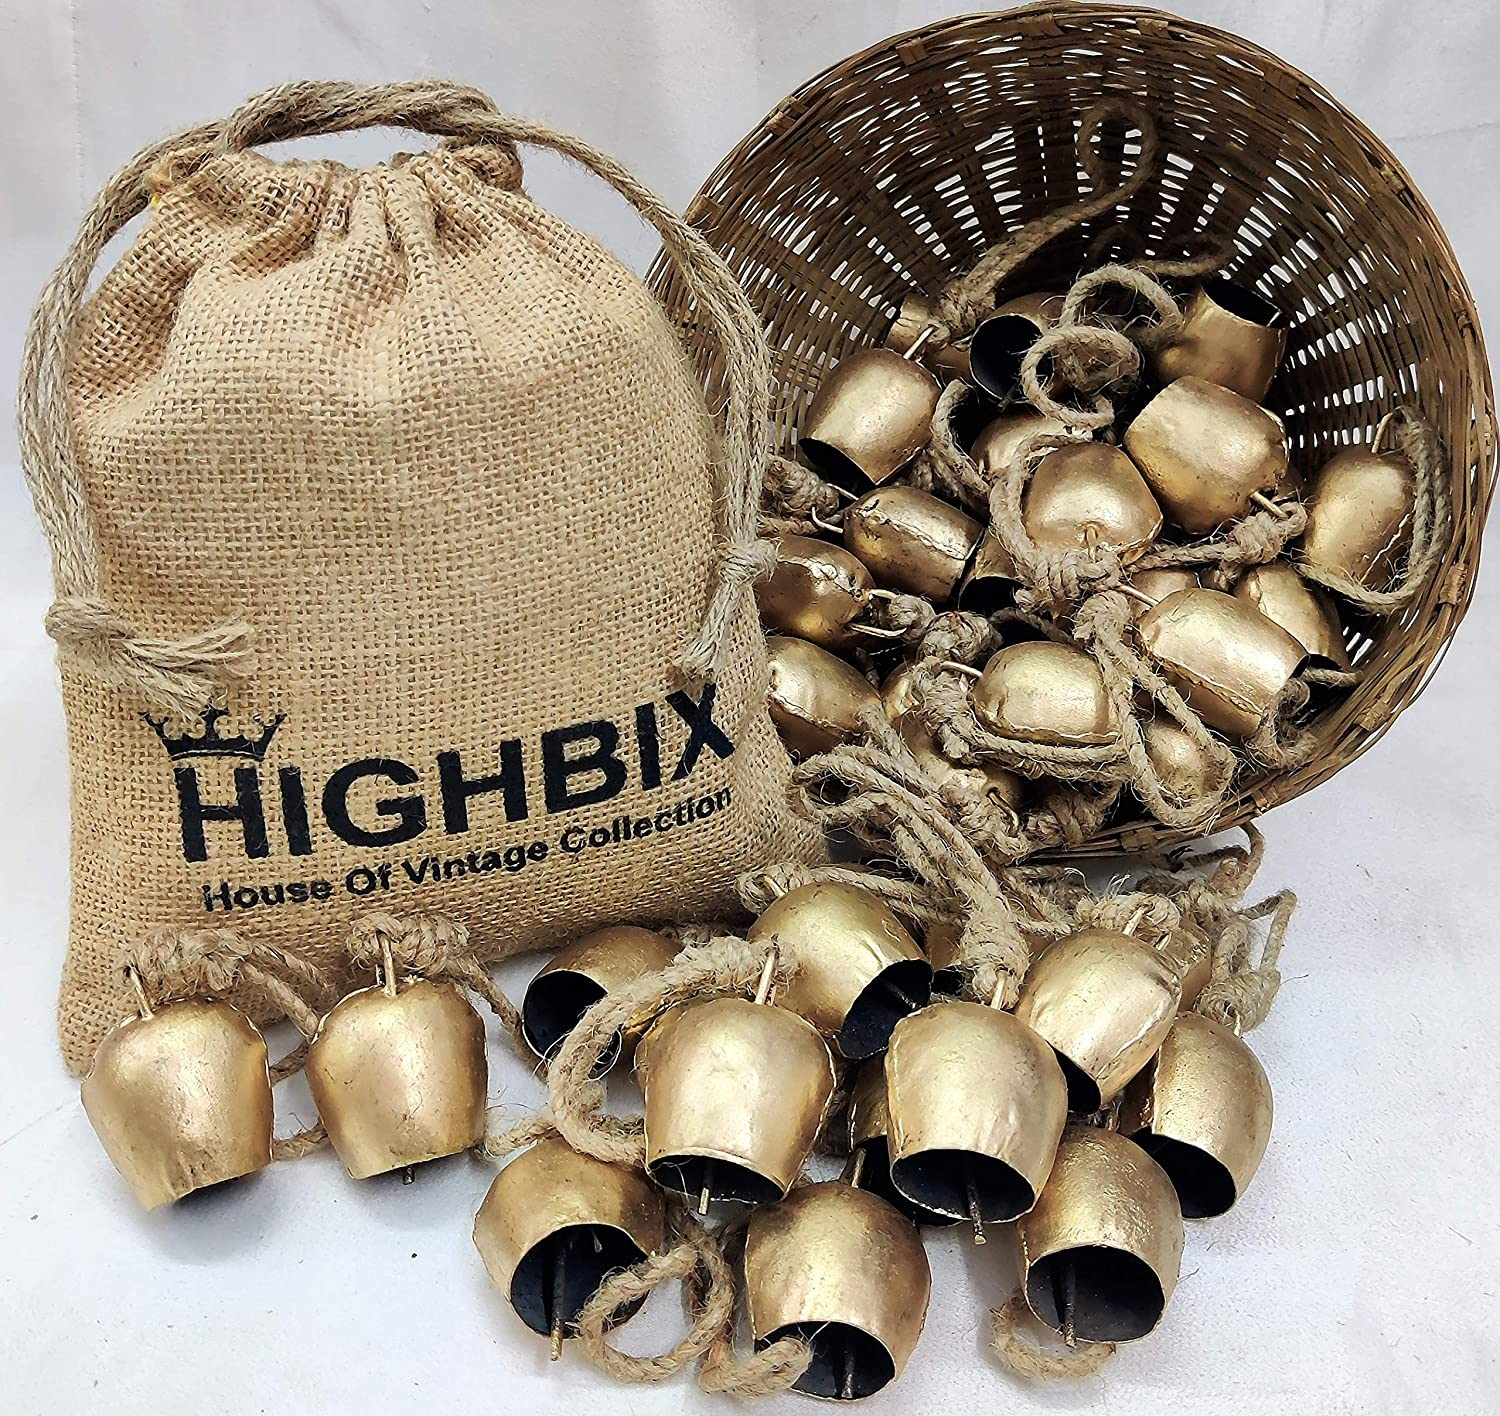 HIGHBIX 5cm Round Handmade Vintage Rustic 2021 spring and summer new Fe Tin Cow Bells Lucky New product type